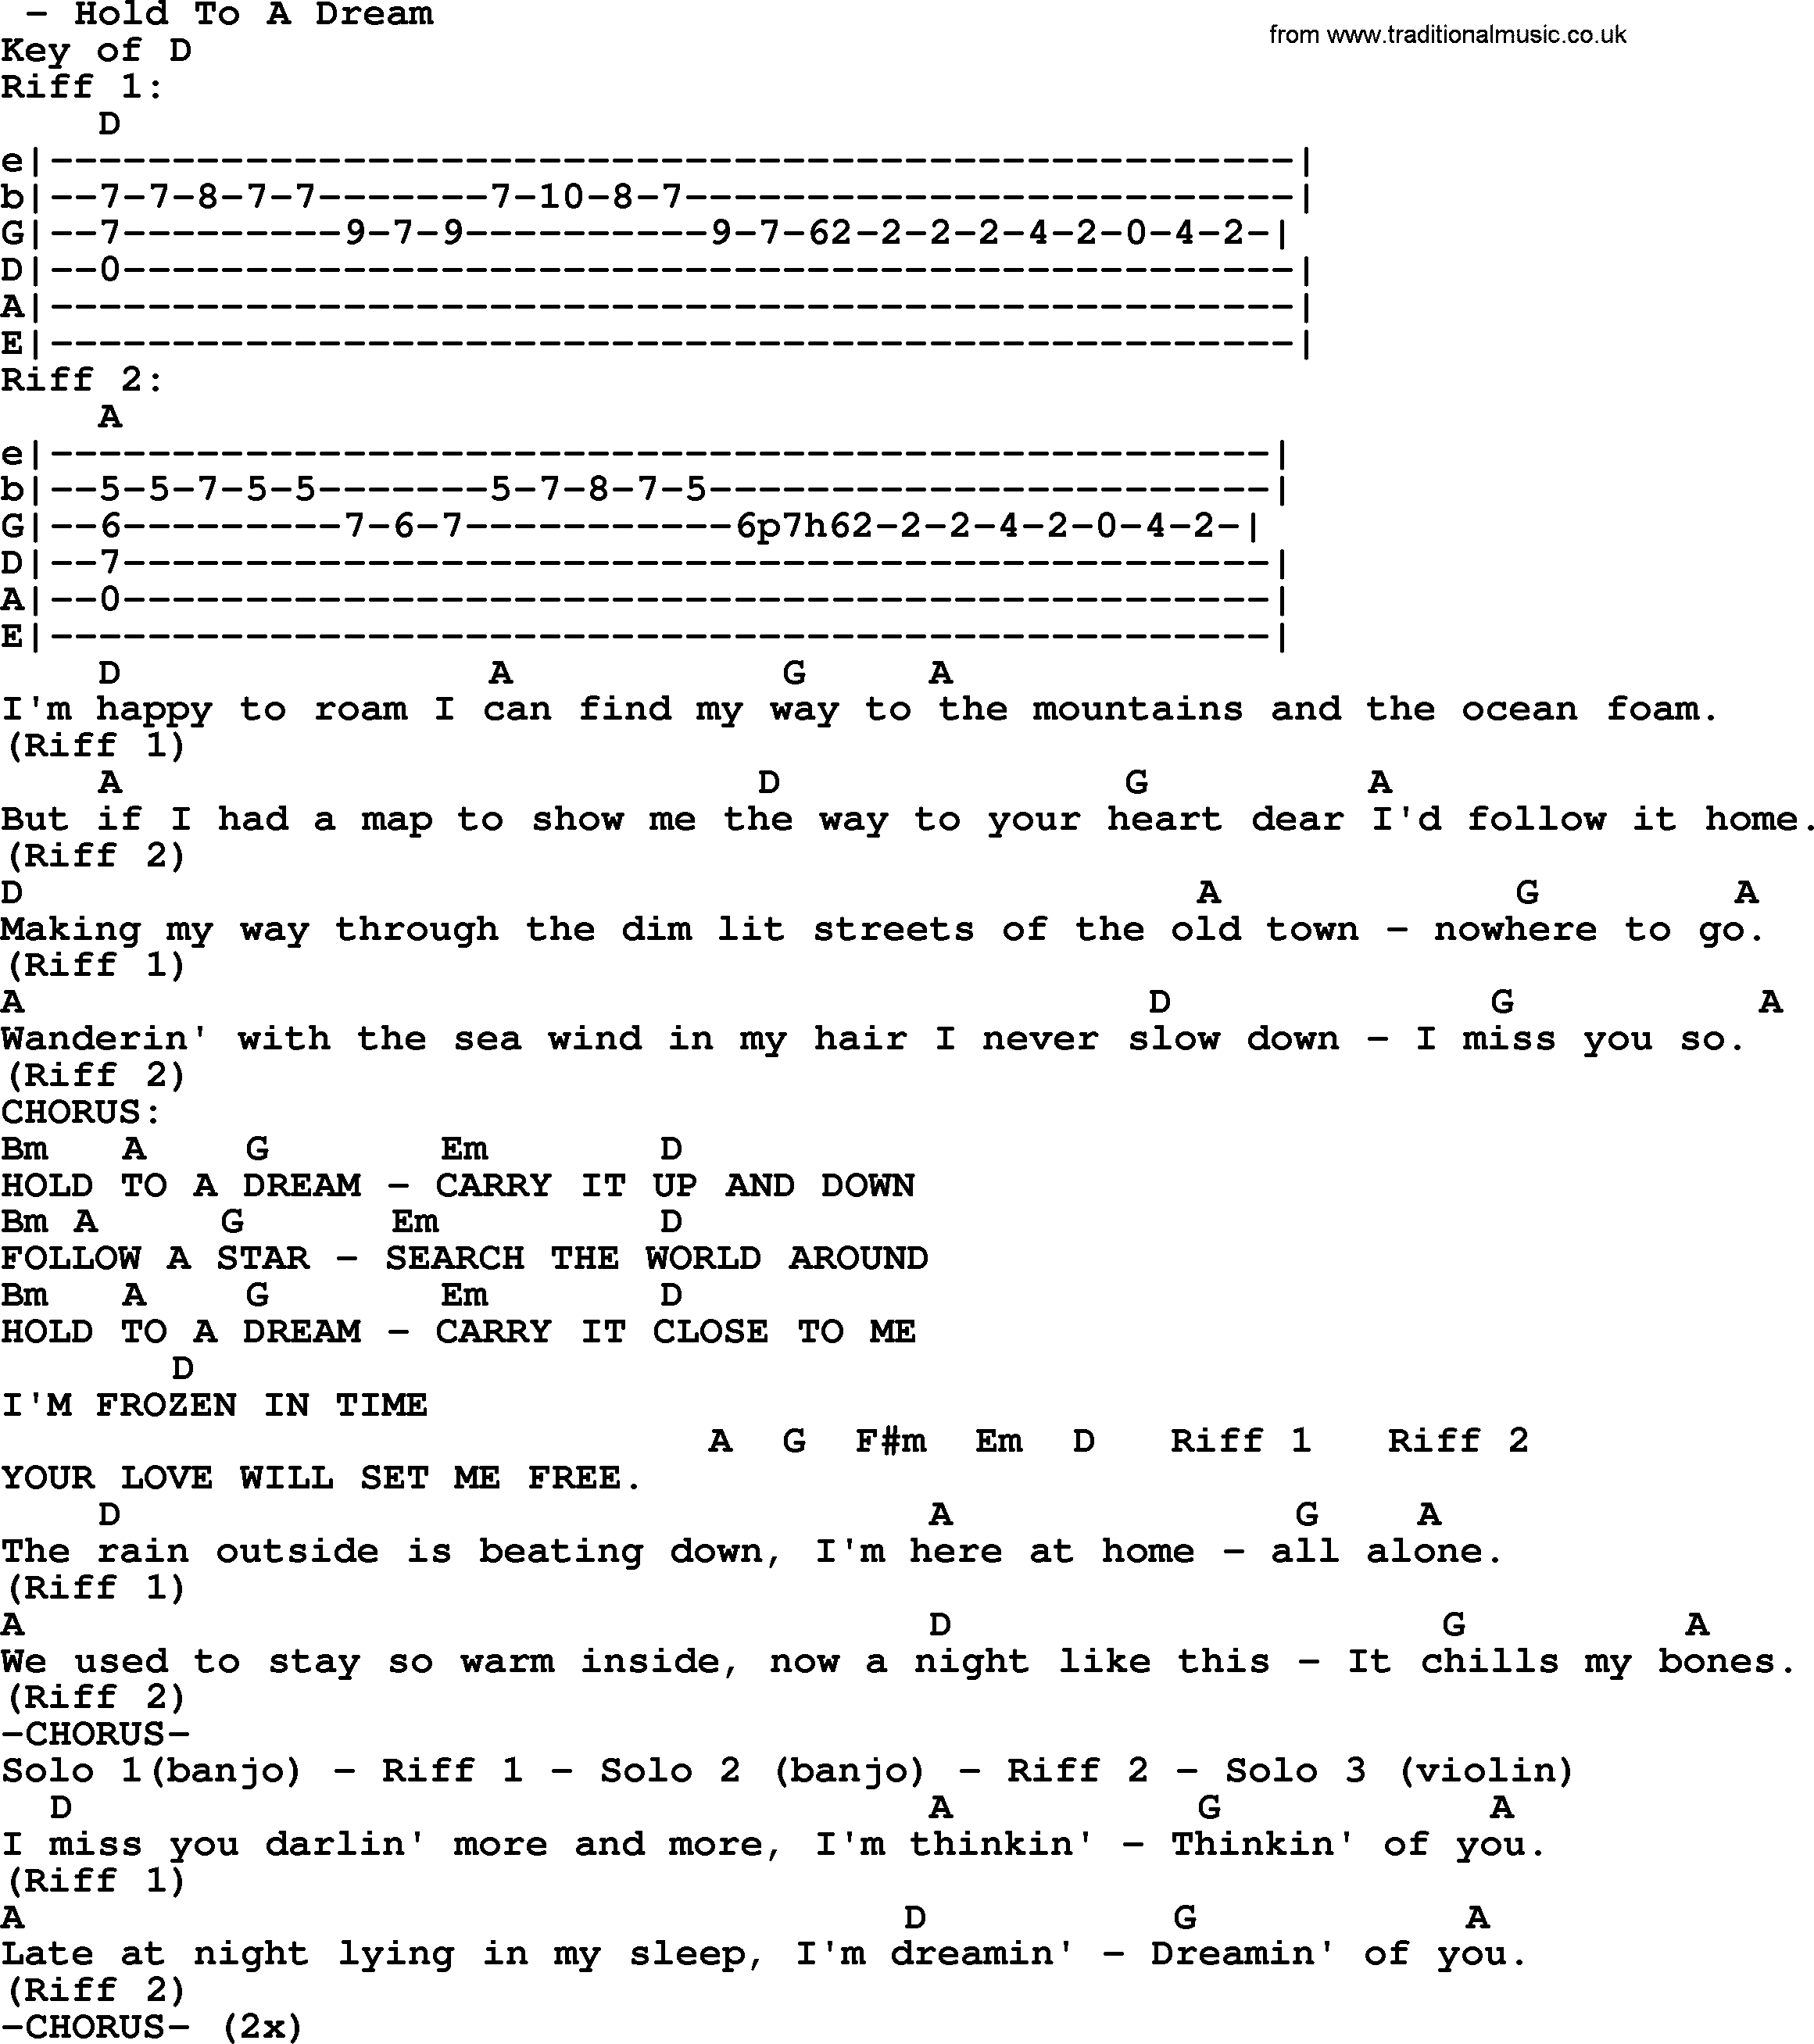 Hold To A Dream - Bluegrass lyrics with chords